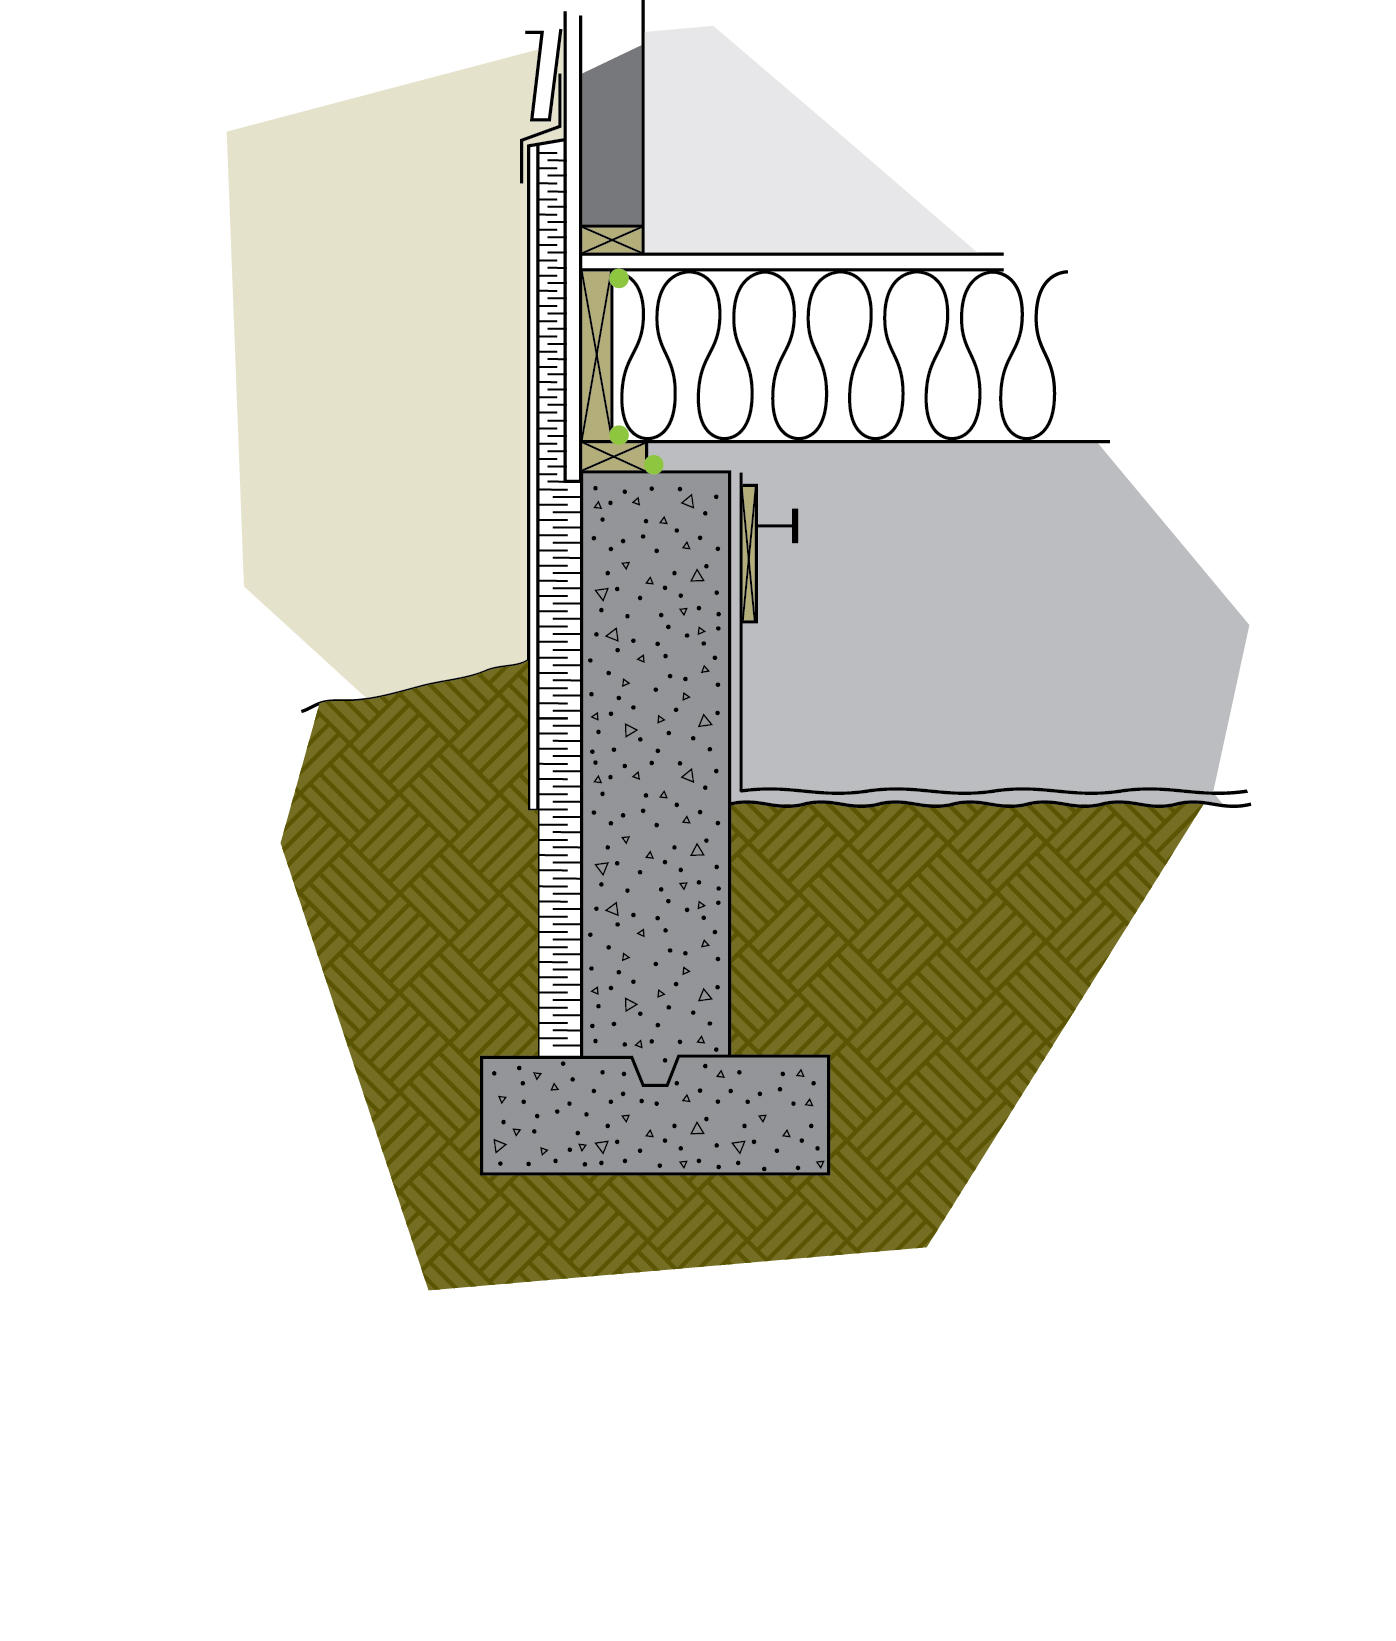 Keeping The Heat In Chapter 6 Basement Insulation Natural Figure 2 Using X 4s To Position Height Of Electrical Boxes 23 On Walls And Floor Creates A Partially Heated